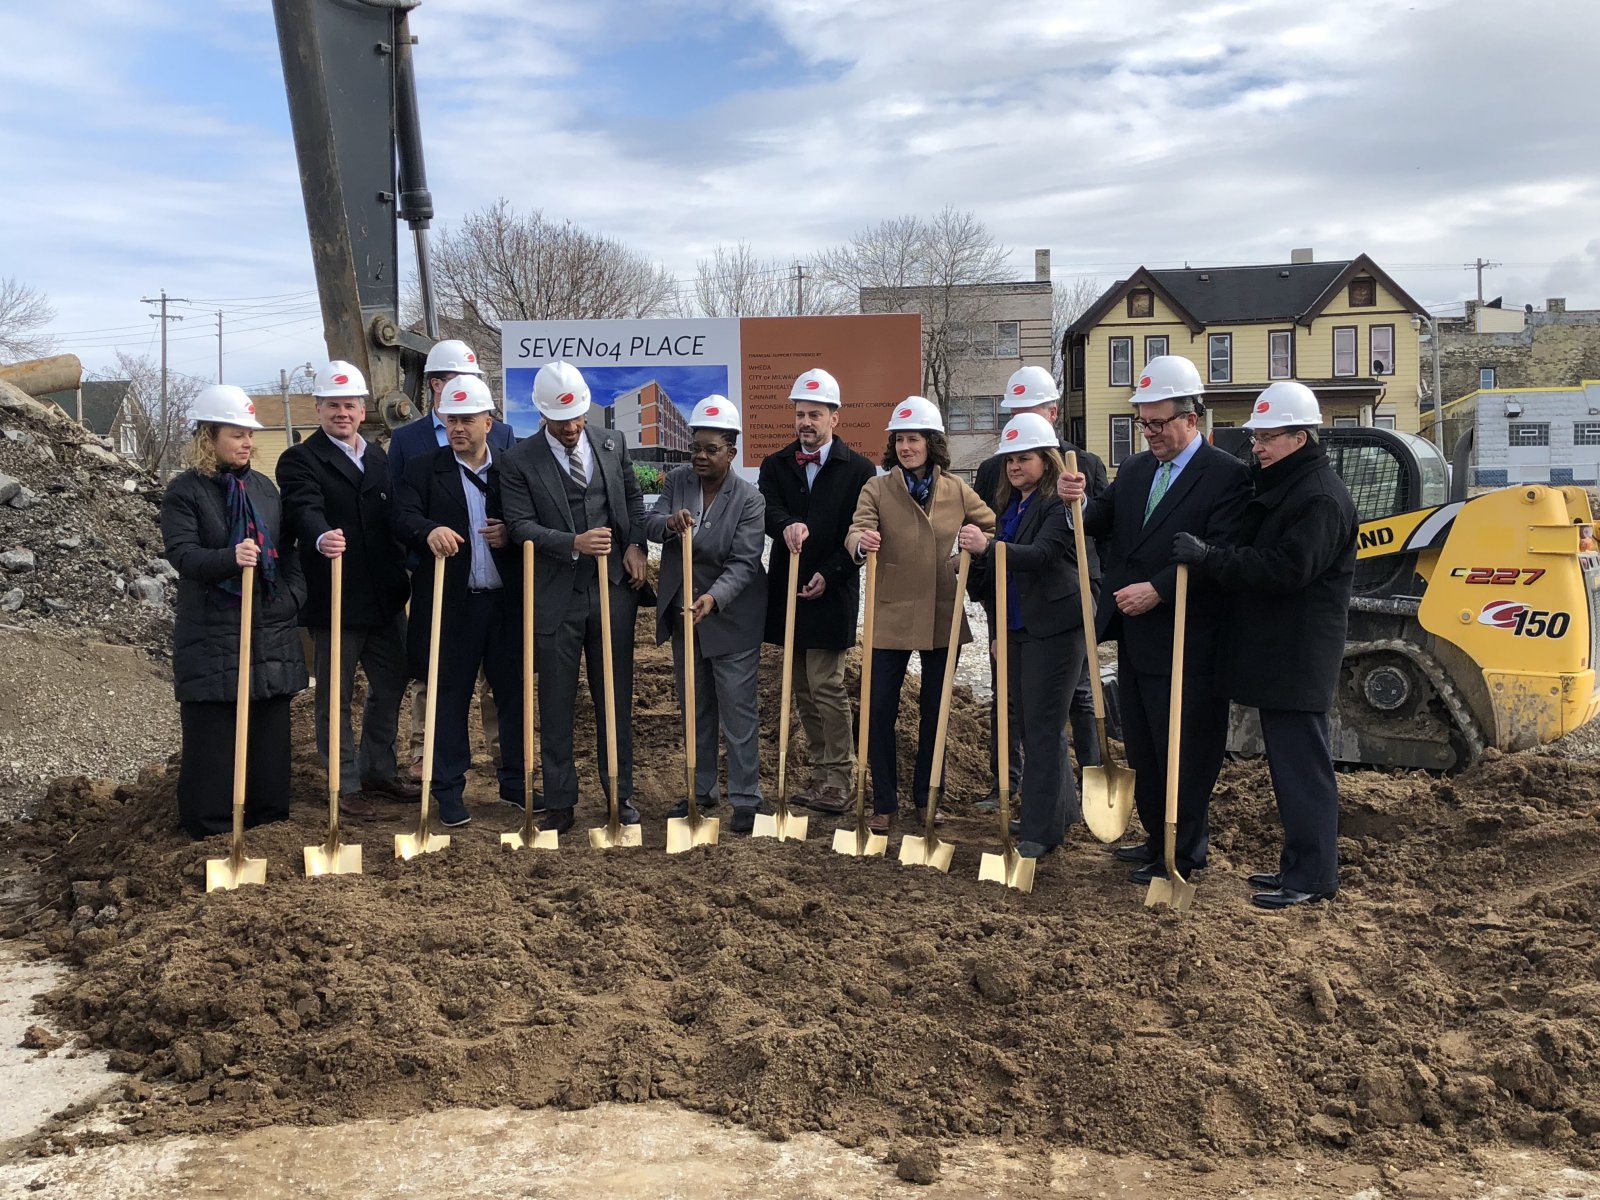 SEVEN04 Place Groundbreaking